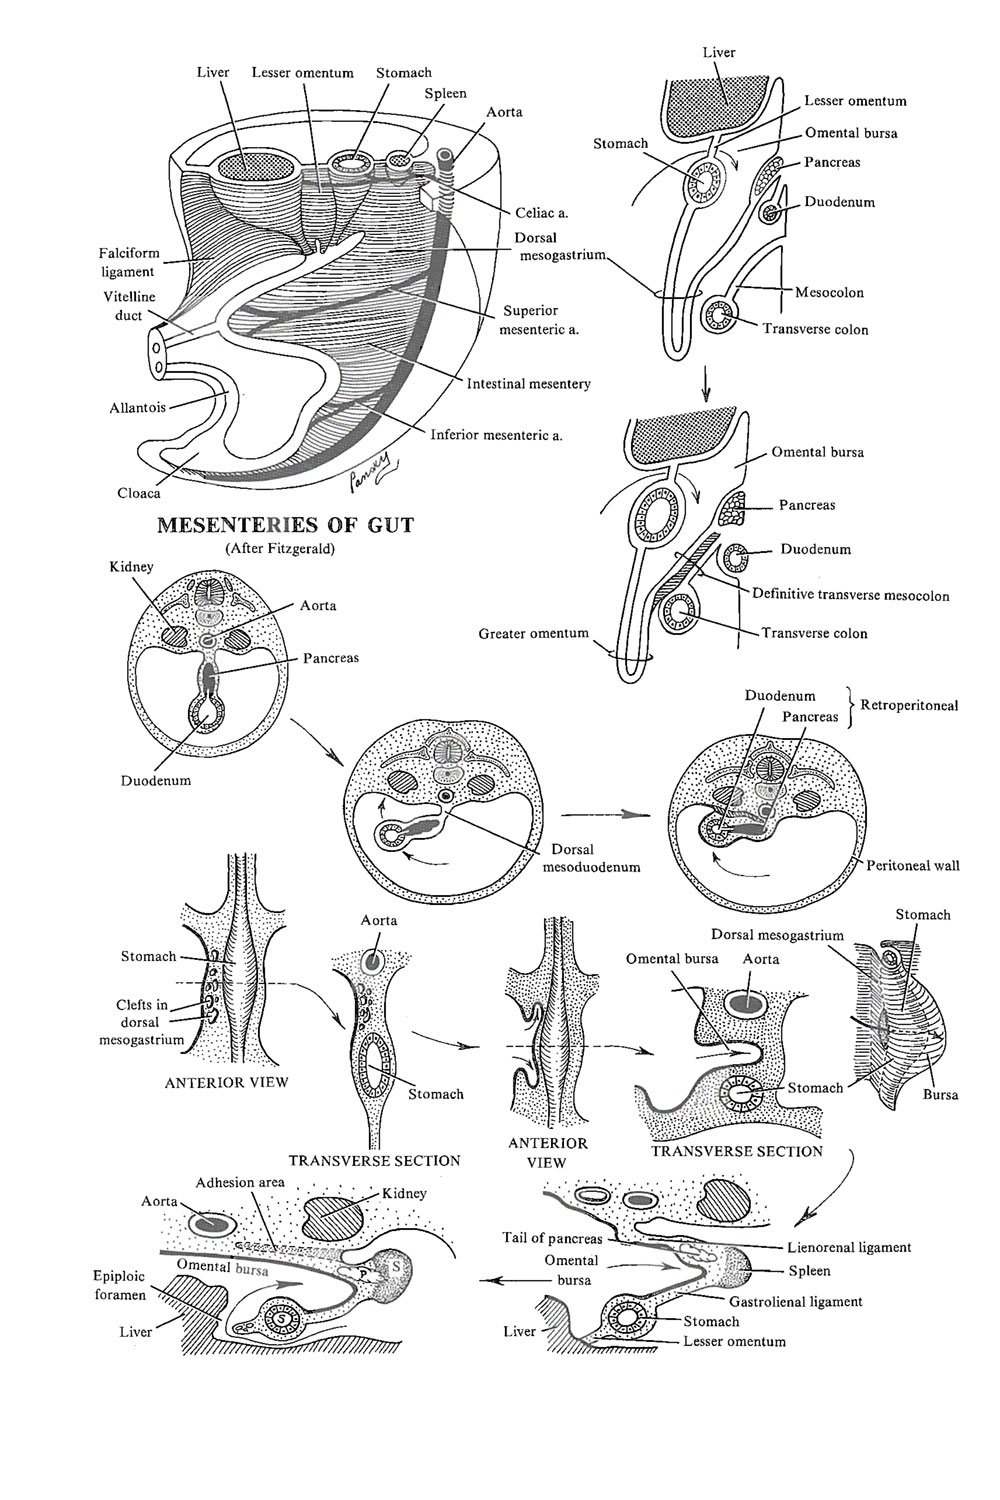 the foregut:  the omental bursa and duodenum: image #1